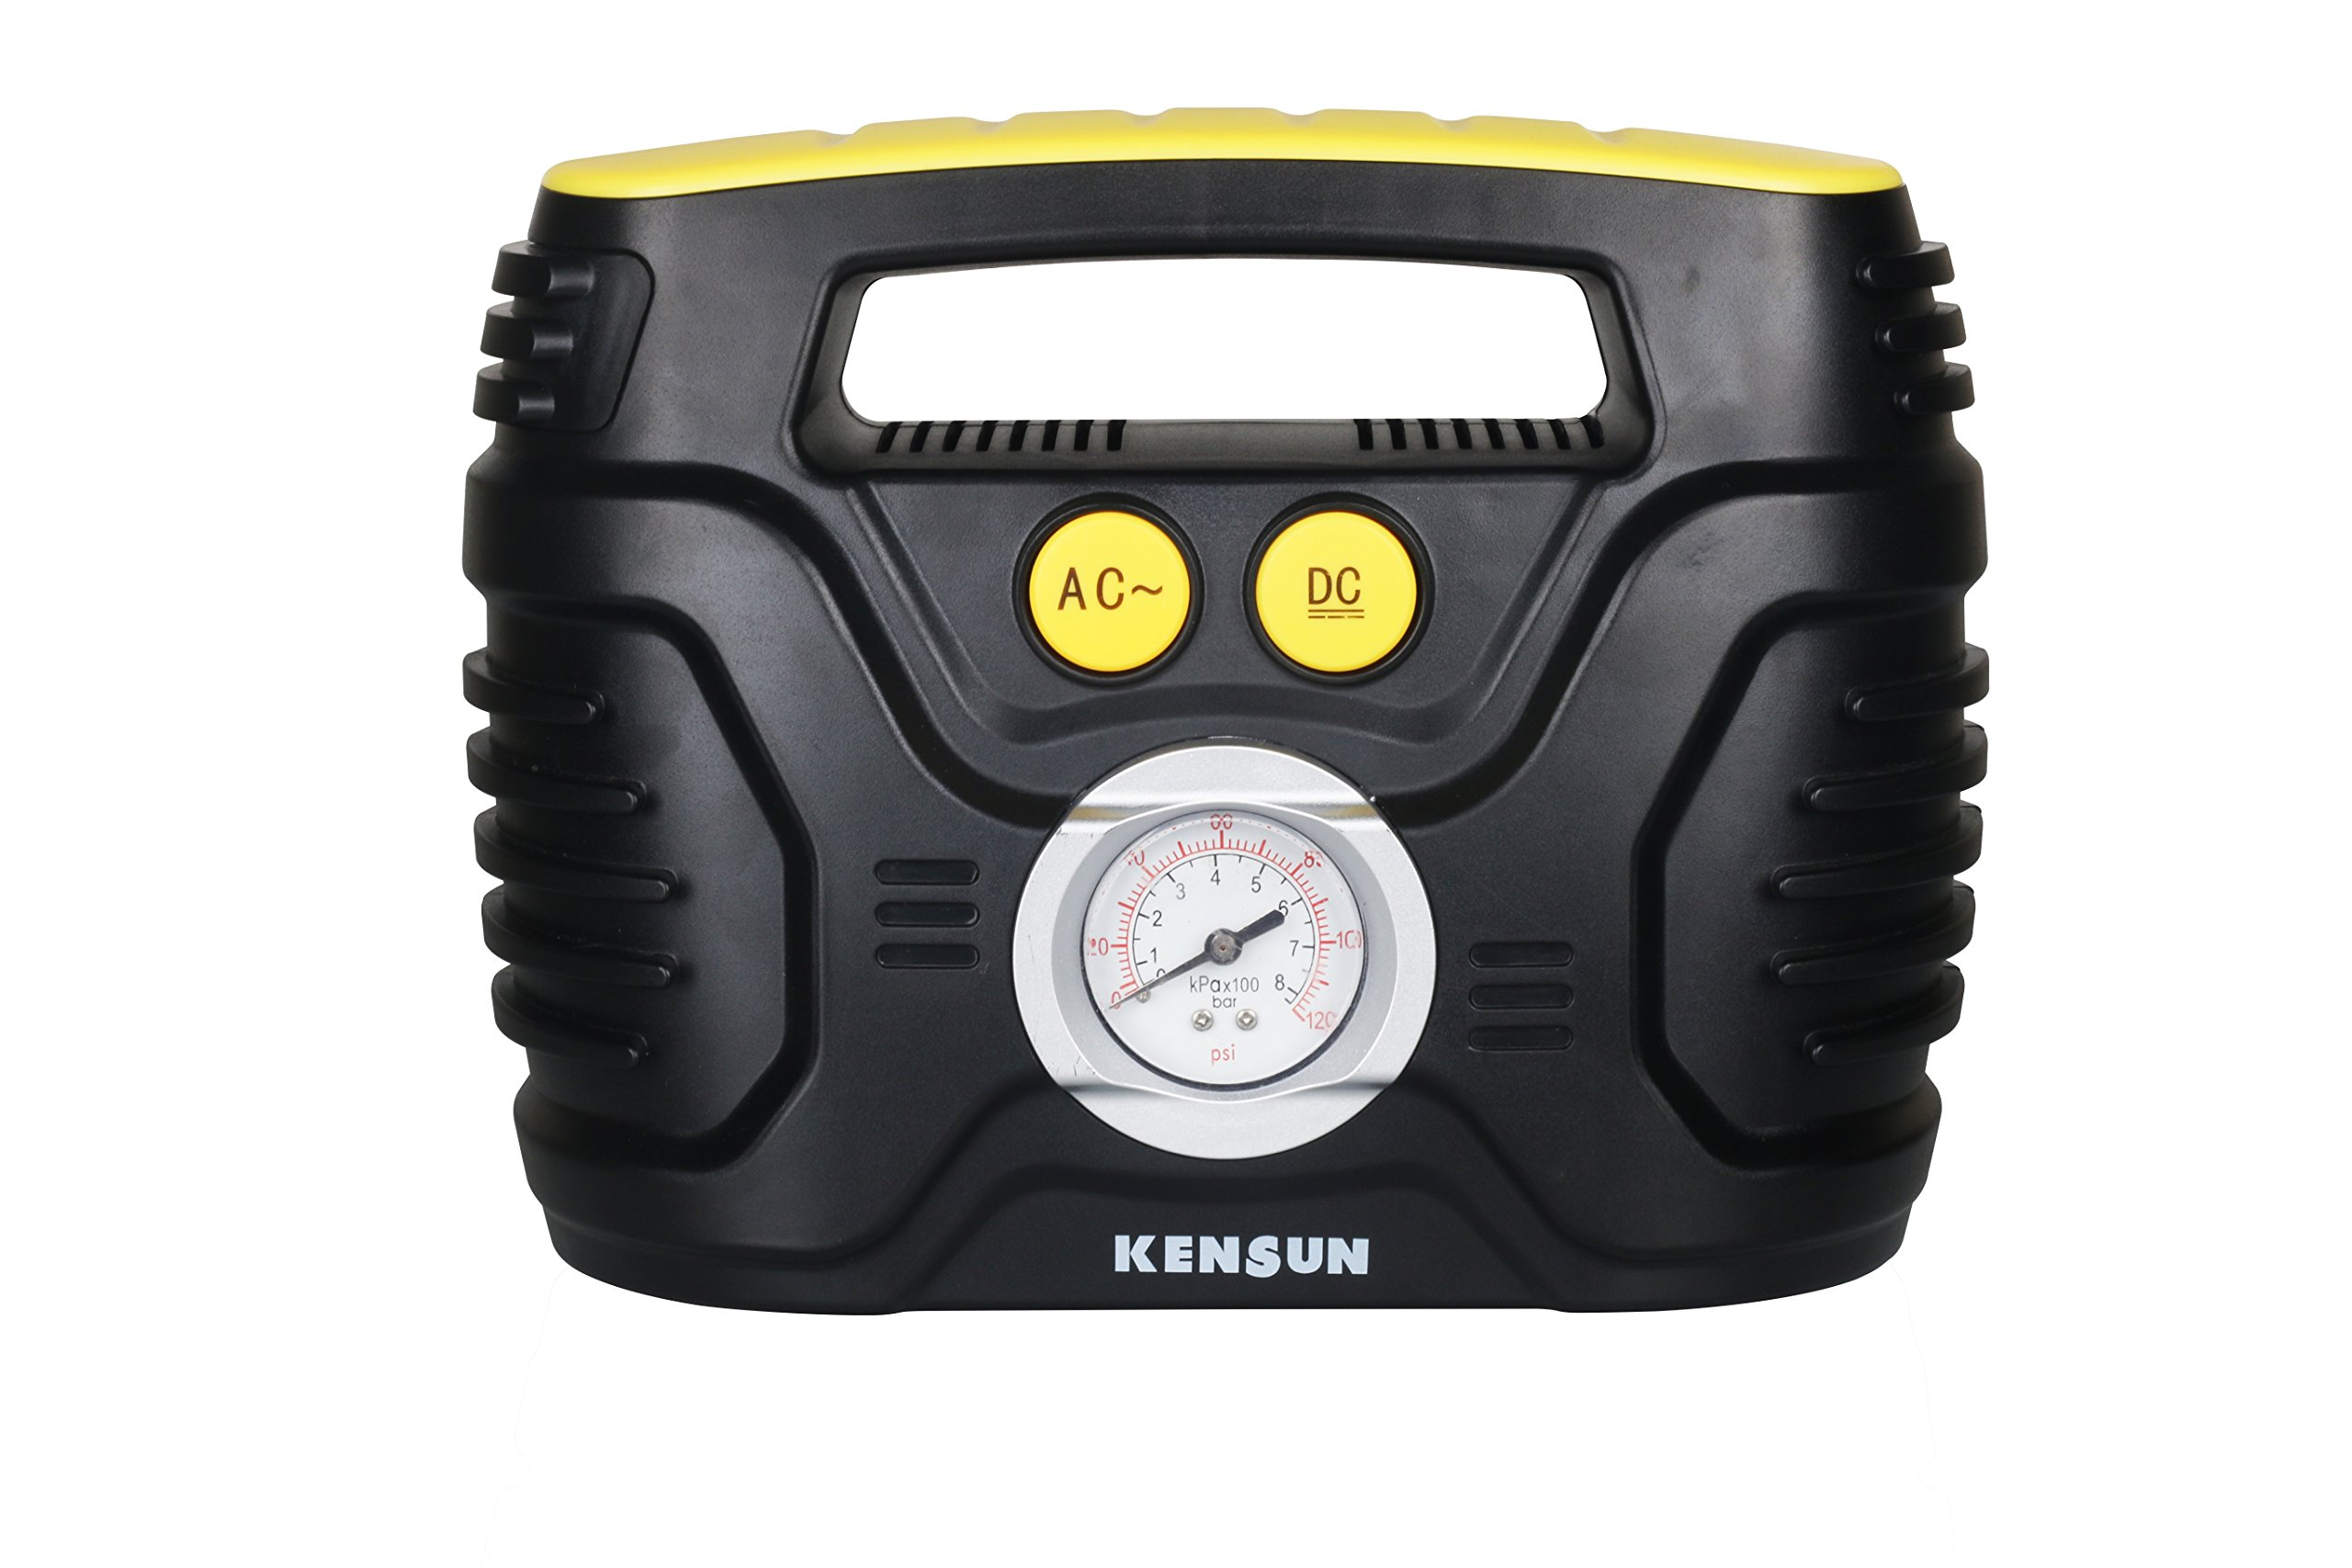 Kensun AC/DC Tire Inflator Portable Air Compressor Pump for Car 12V DC and Home 110V AC Swift Performance Inflator for…